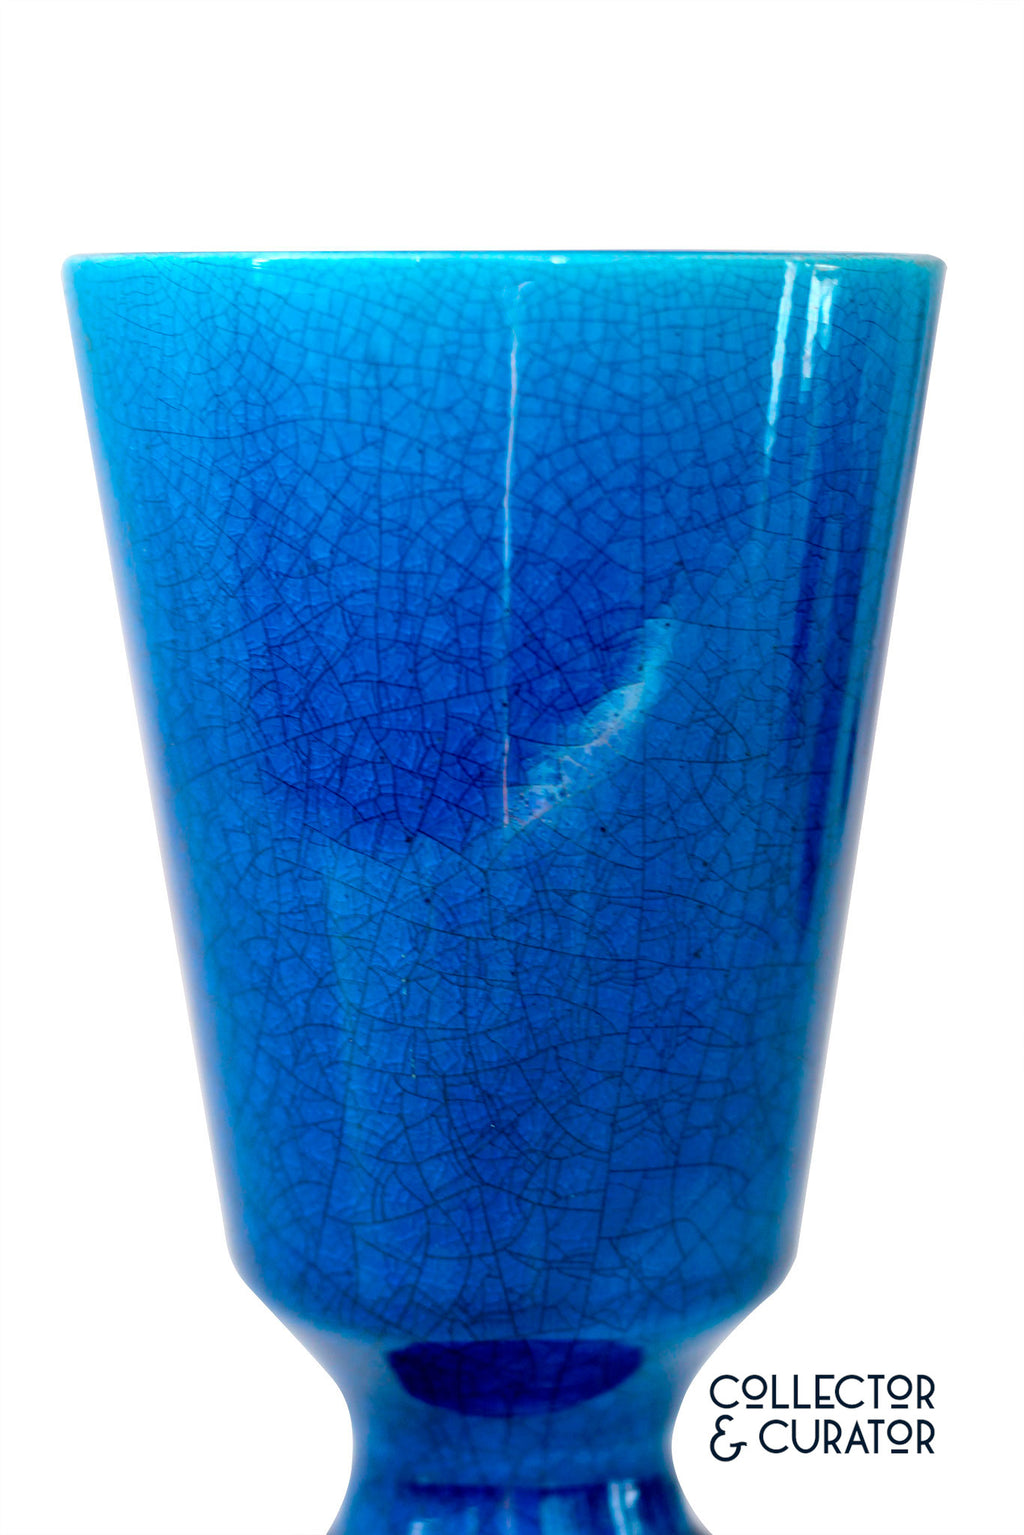 Turquoise Crackle Glaze Vase - Collector & Curator